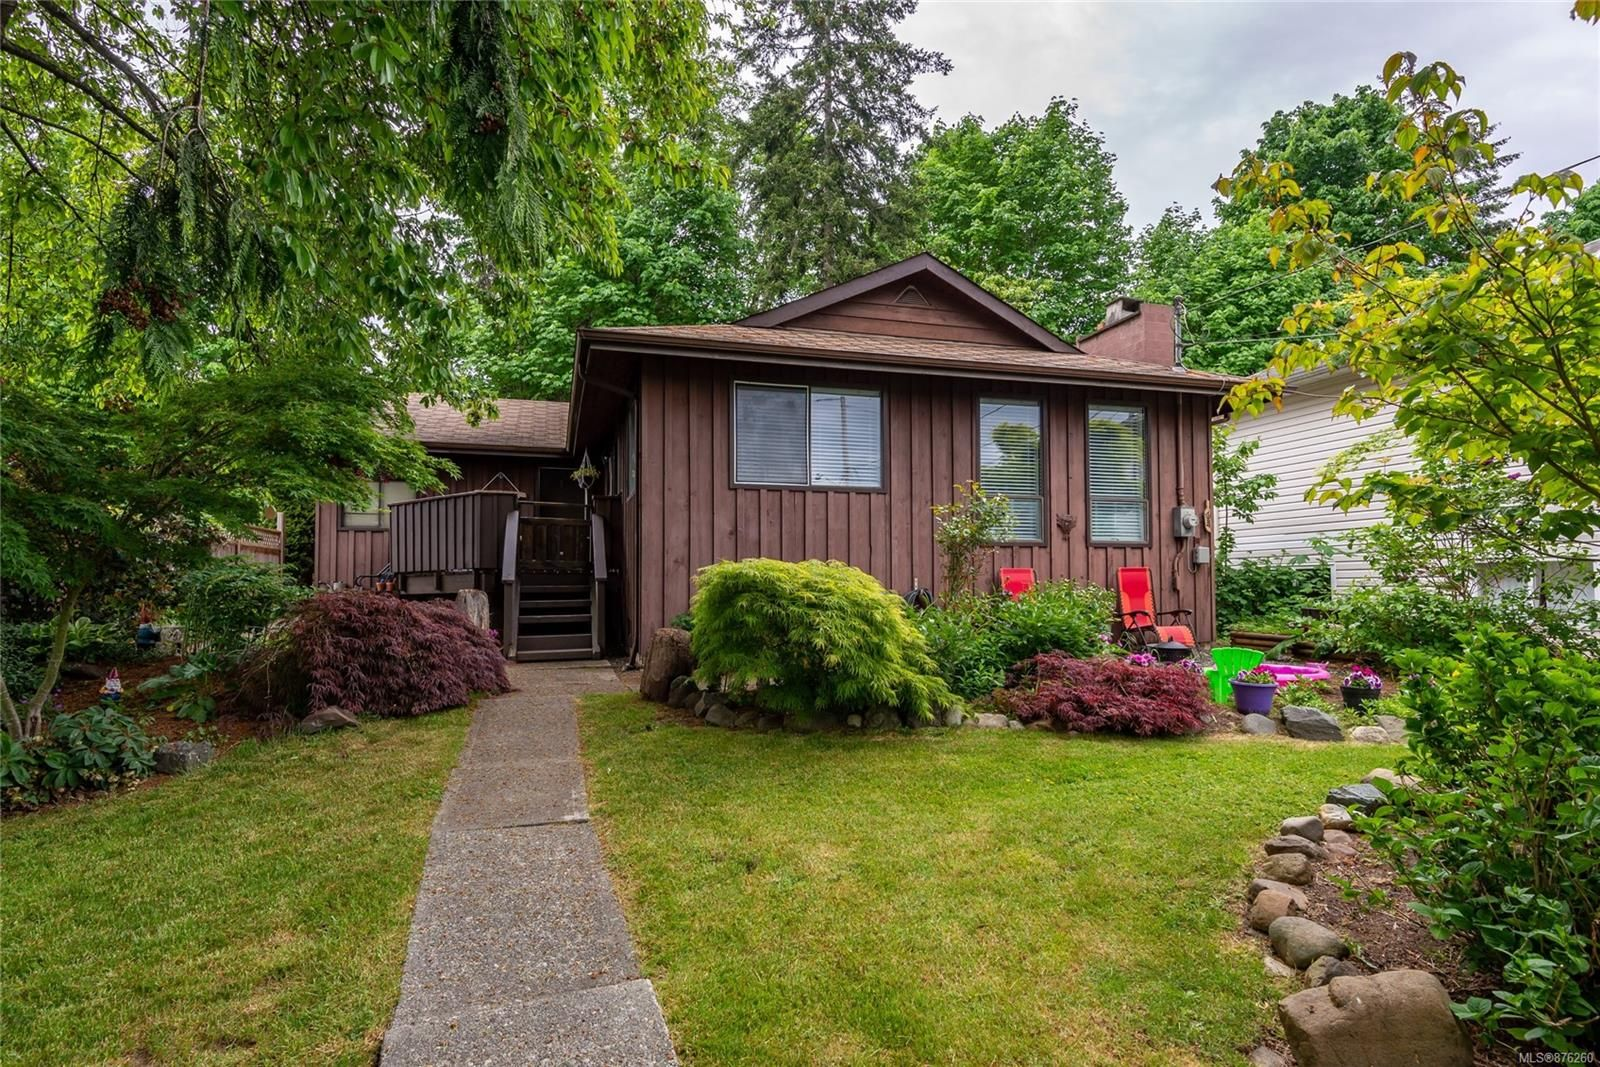 Main Photo: 935 Hemlock St in : CR Campbell River Central House for sale (Campbell River)  : MLS®# 876260